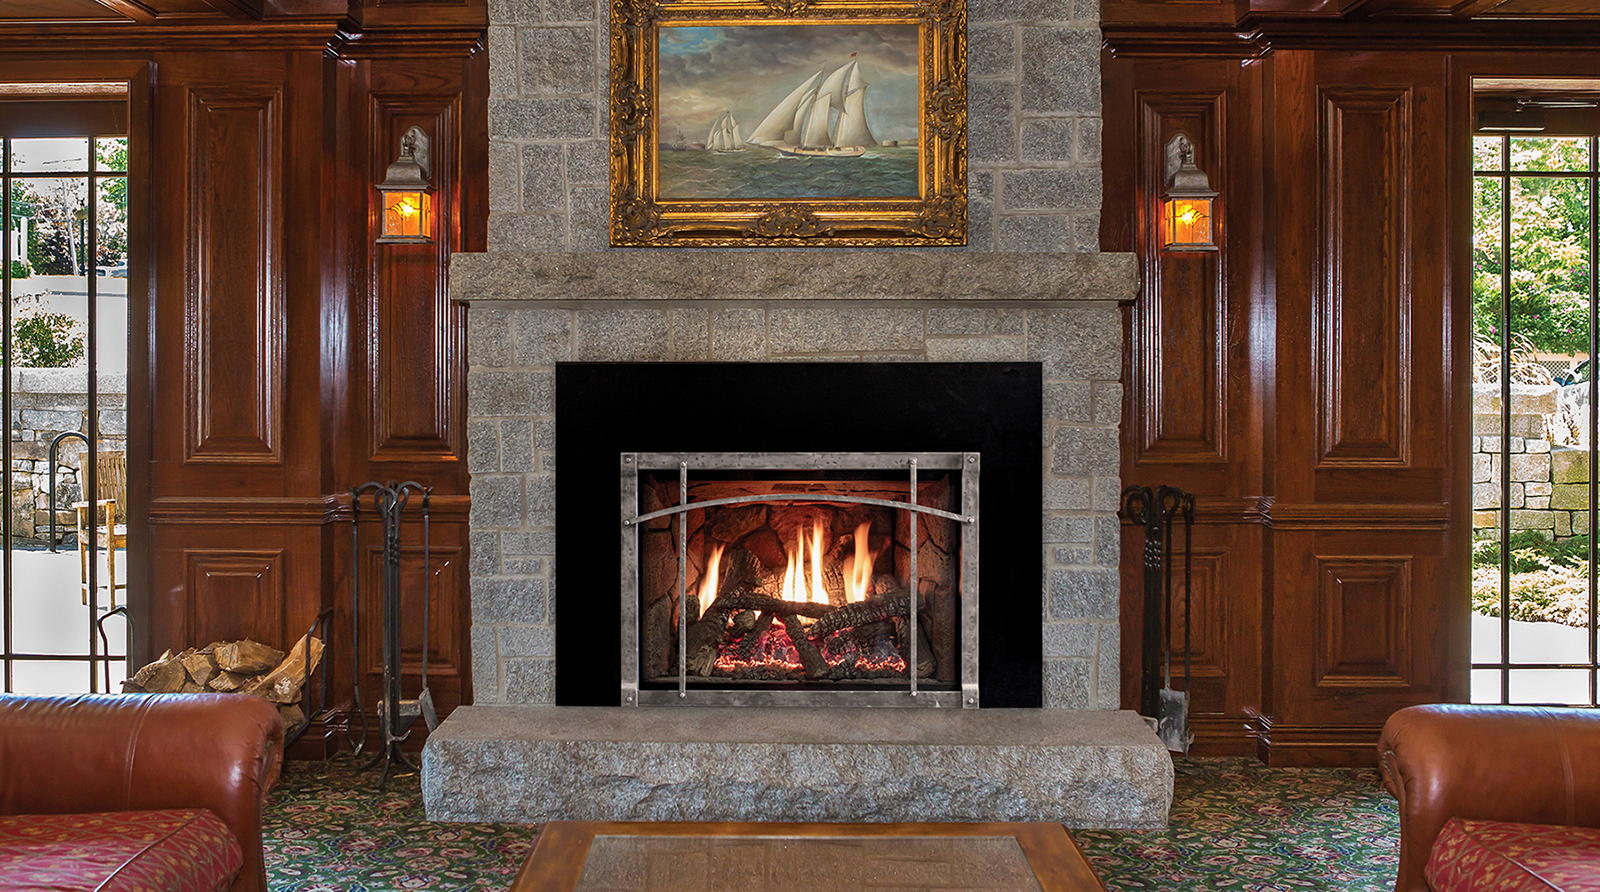 Rushmore Tru Flame Direct Vent Fireplace Inserts